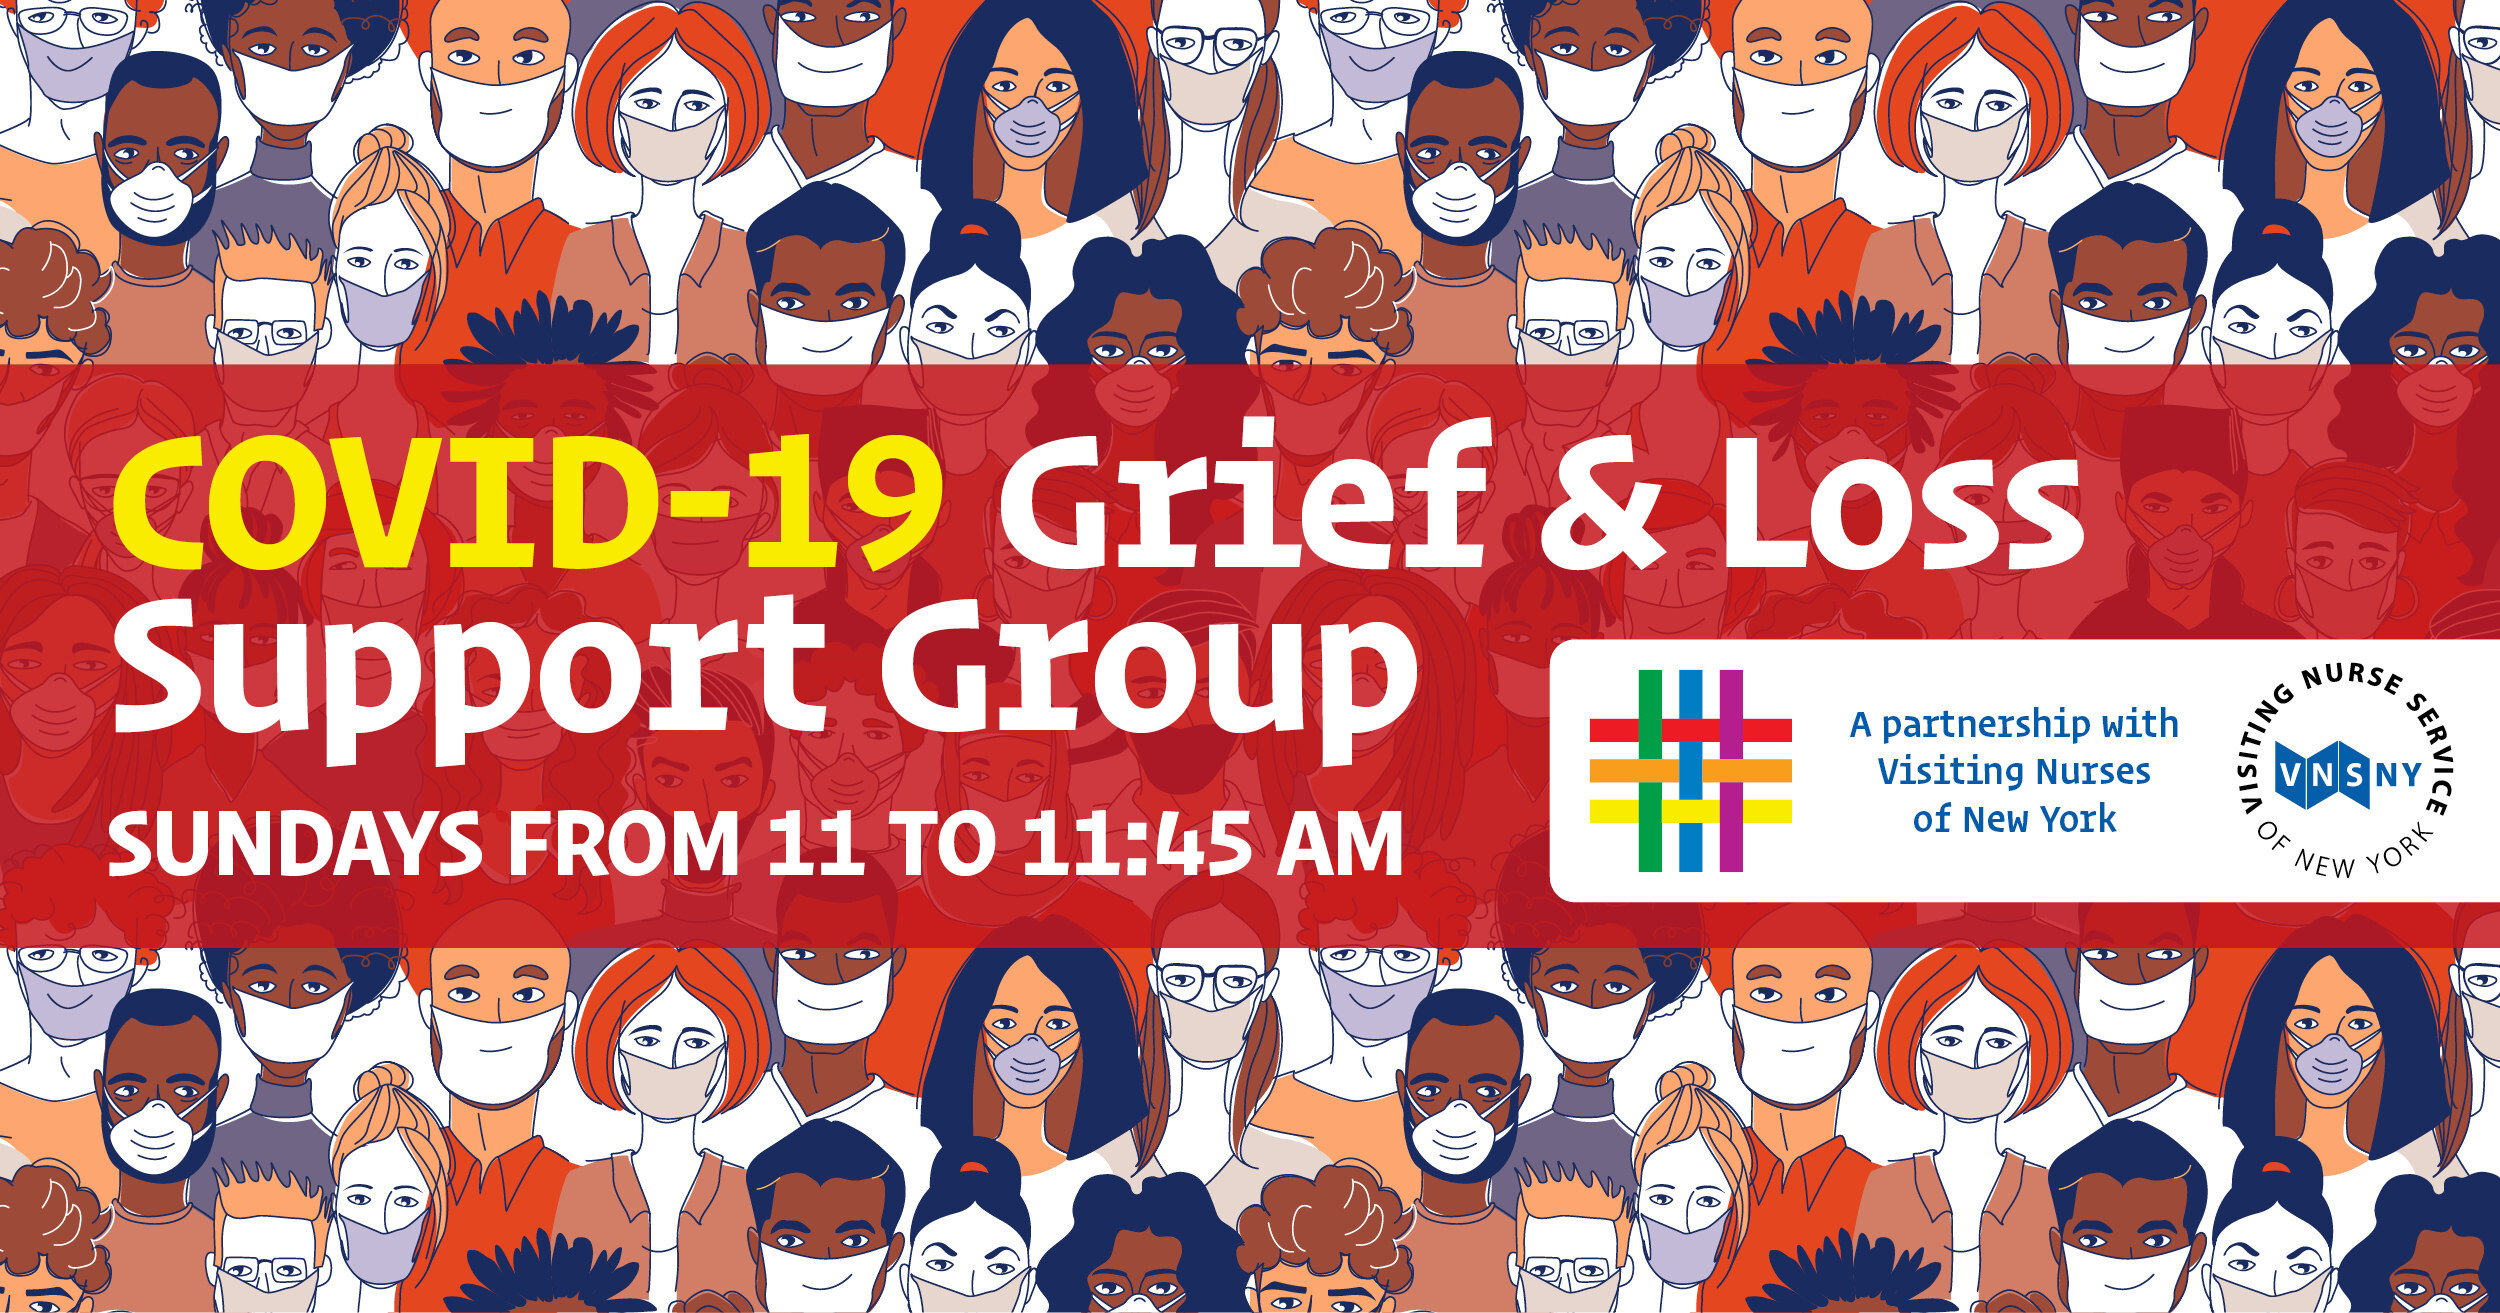 COVID-19 Grief & Loss Support Group